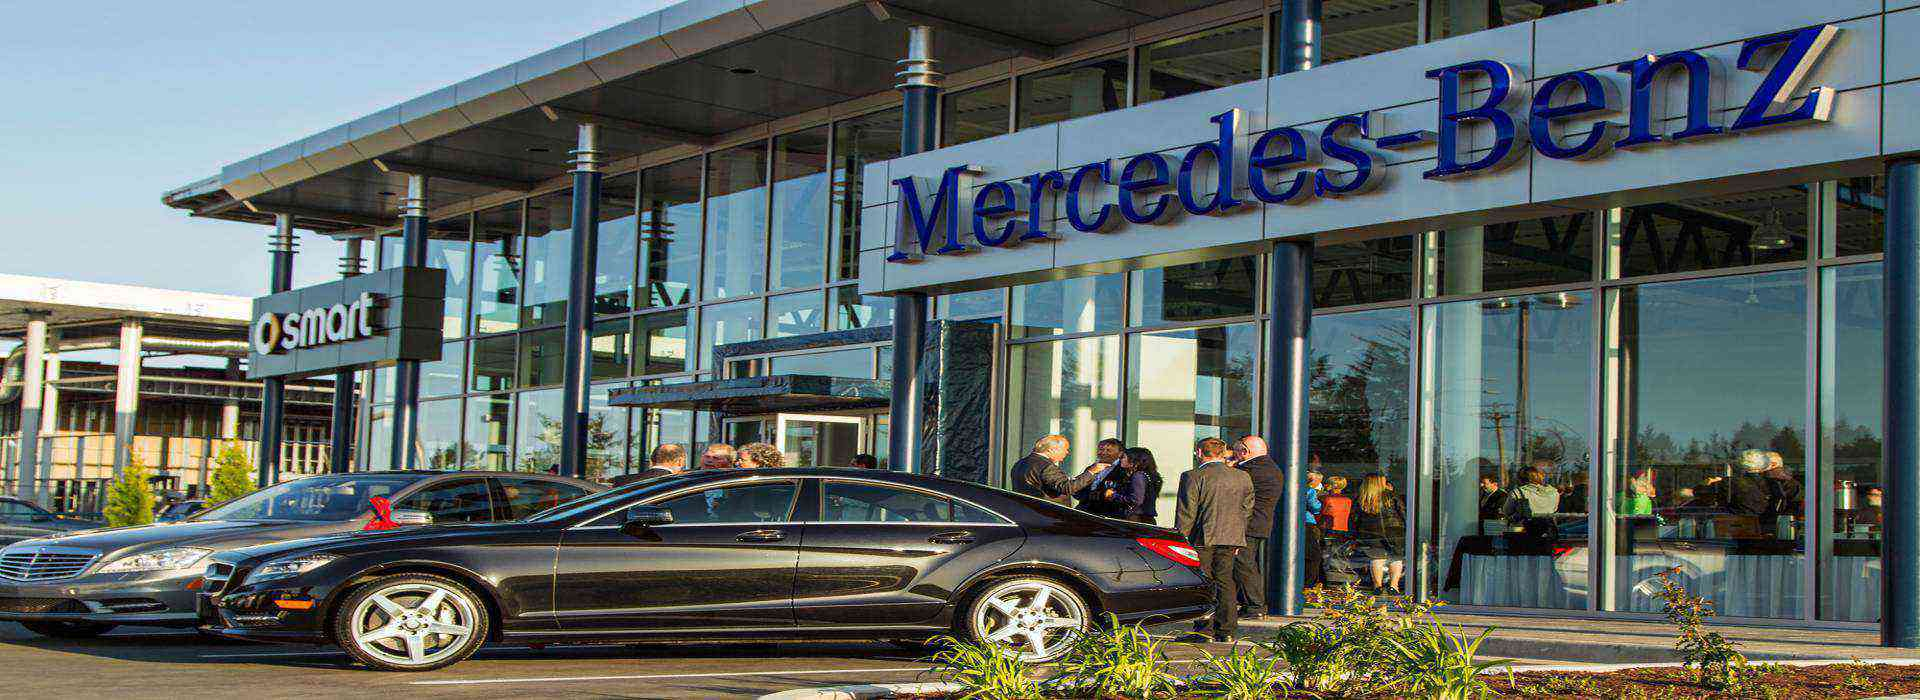 Mercedes benz indonesia customer care number address for Mercedes benz customer service usa